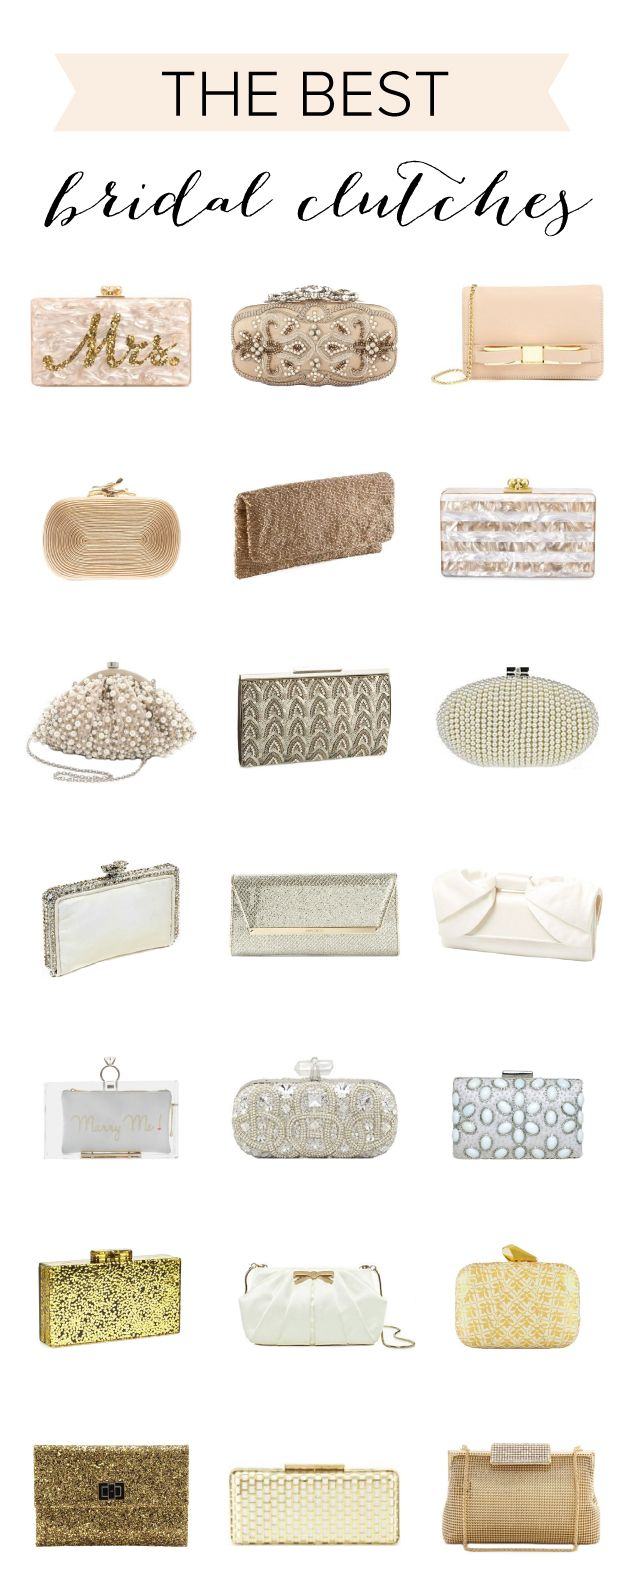 The Most Beautiful Bridal Clutches for Your Big Day!